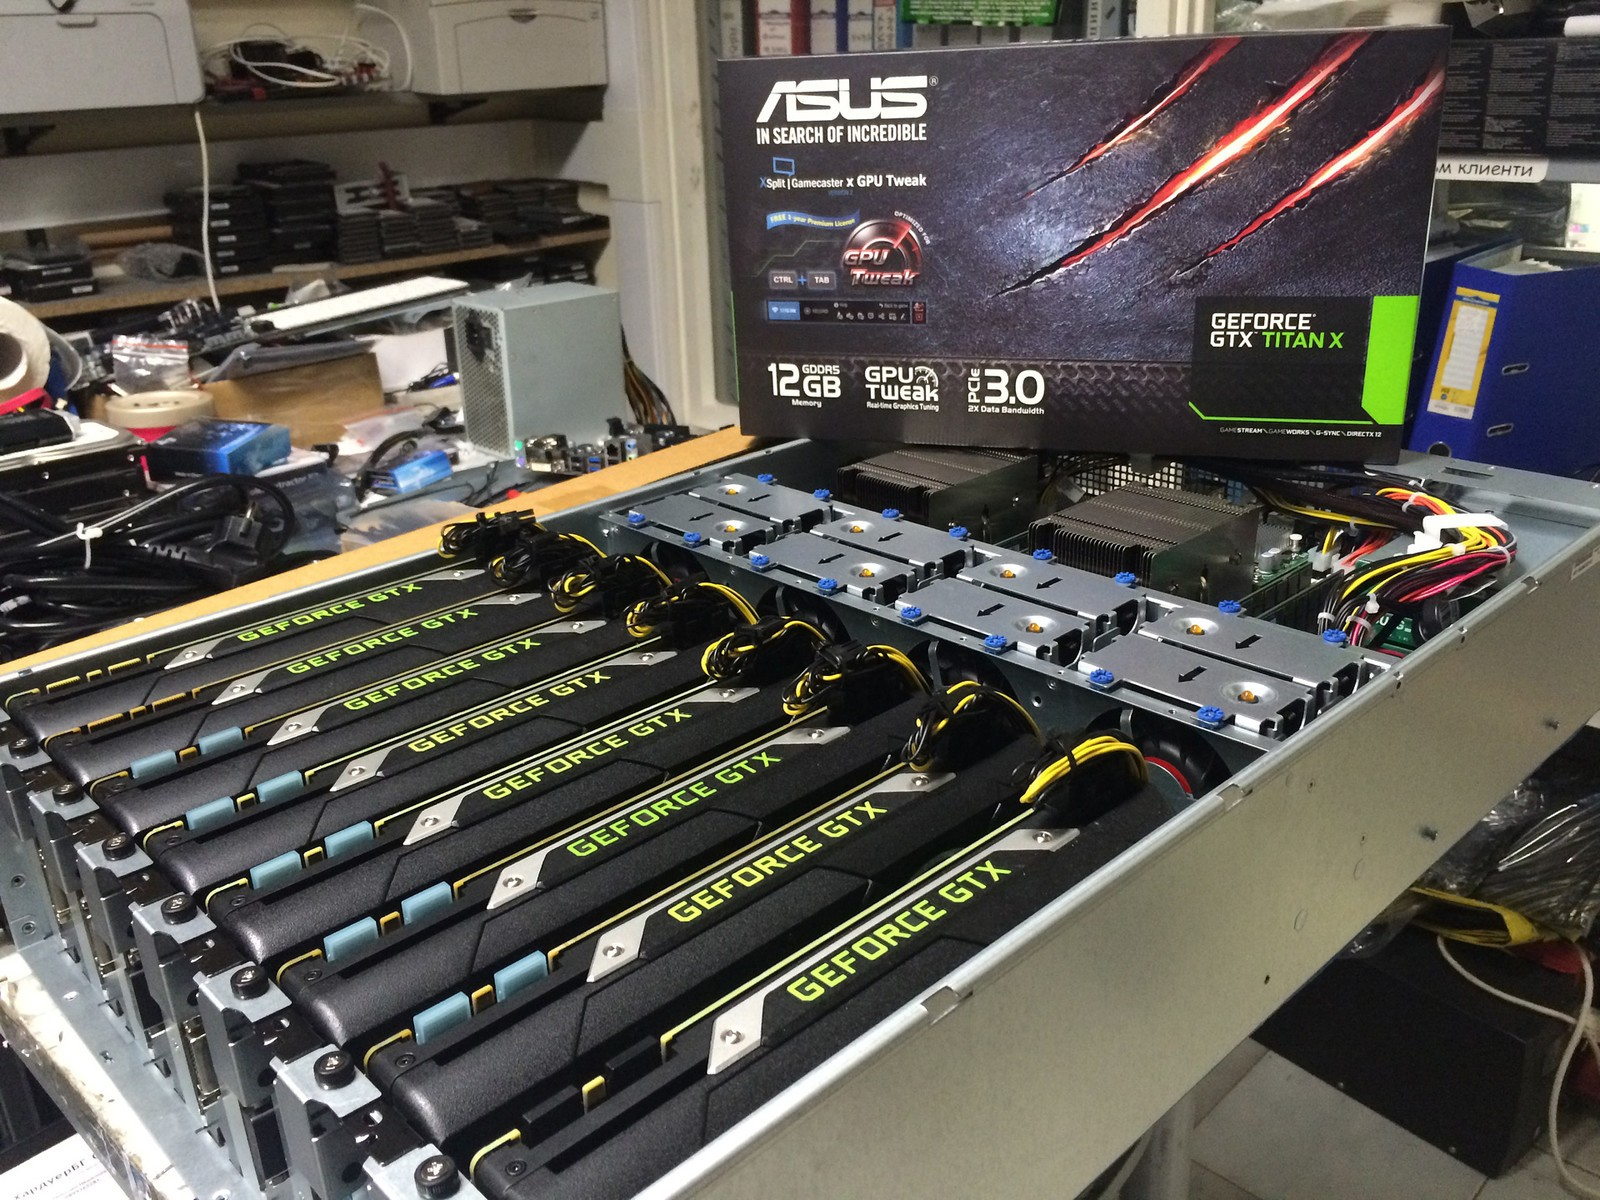 what cryptocurrencies can i mine on older graphics cards